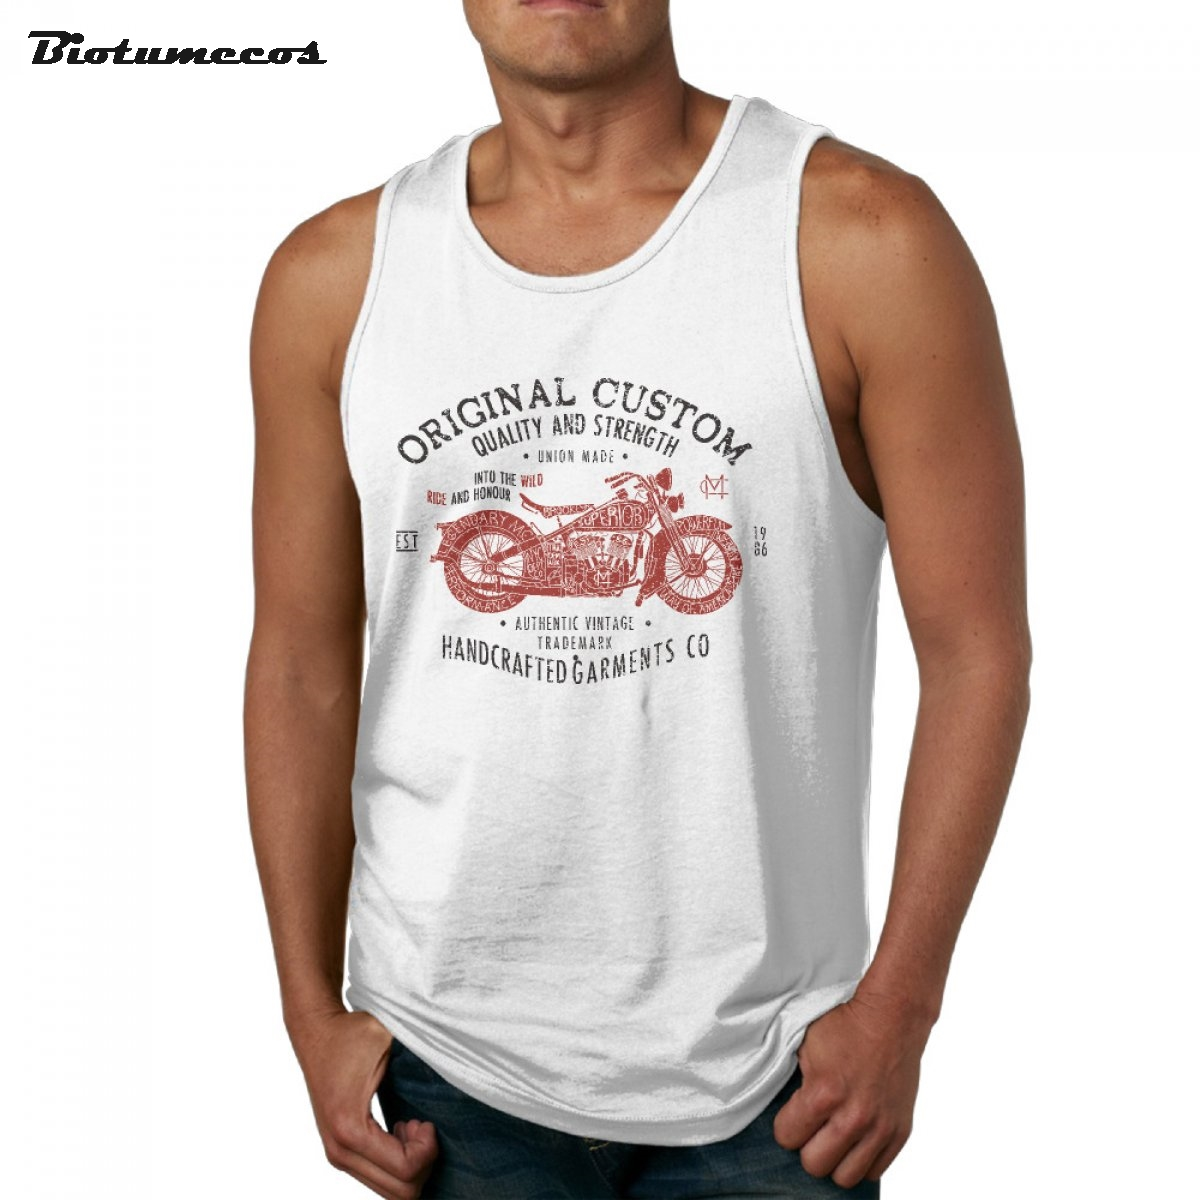 Men Tank Tops Fashion Brand Sleeveless T Shirt Original Custom